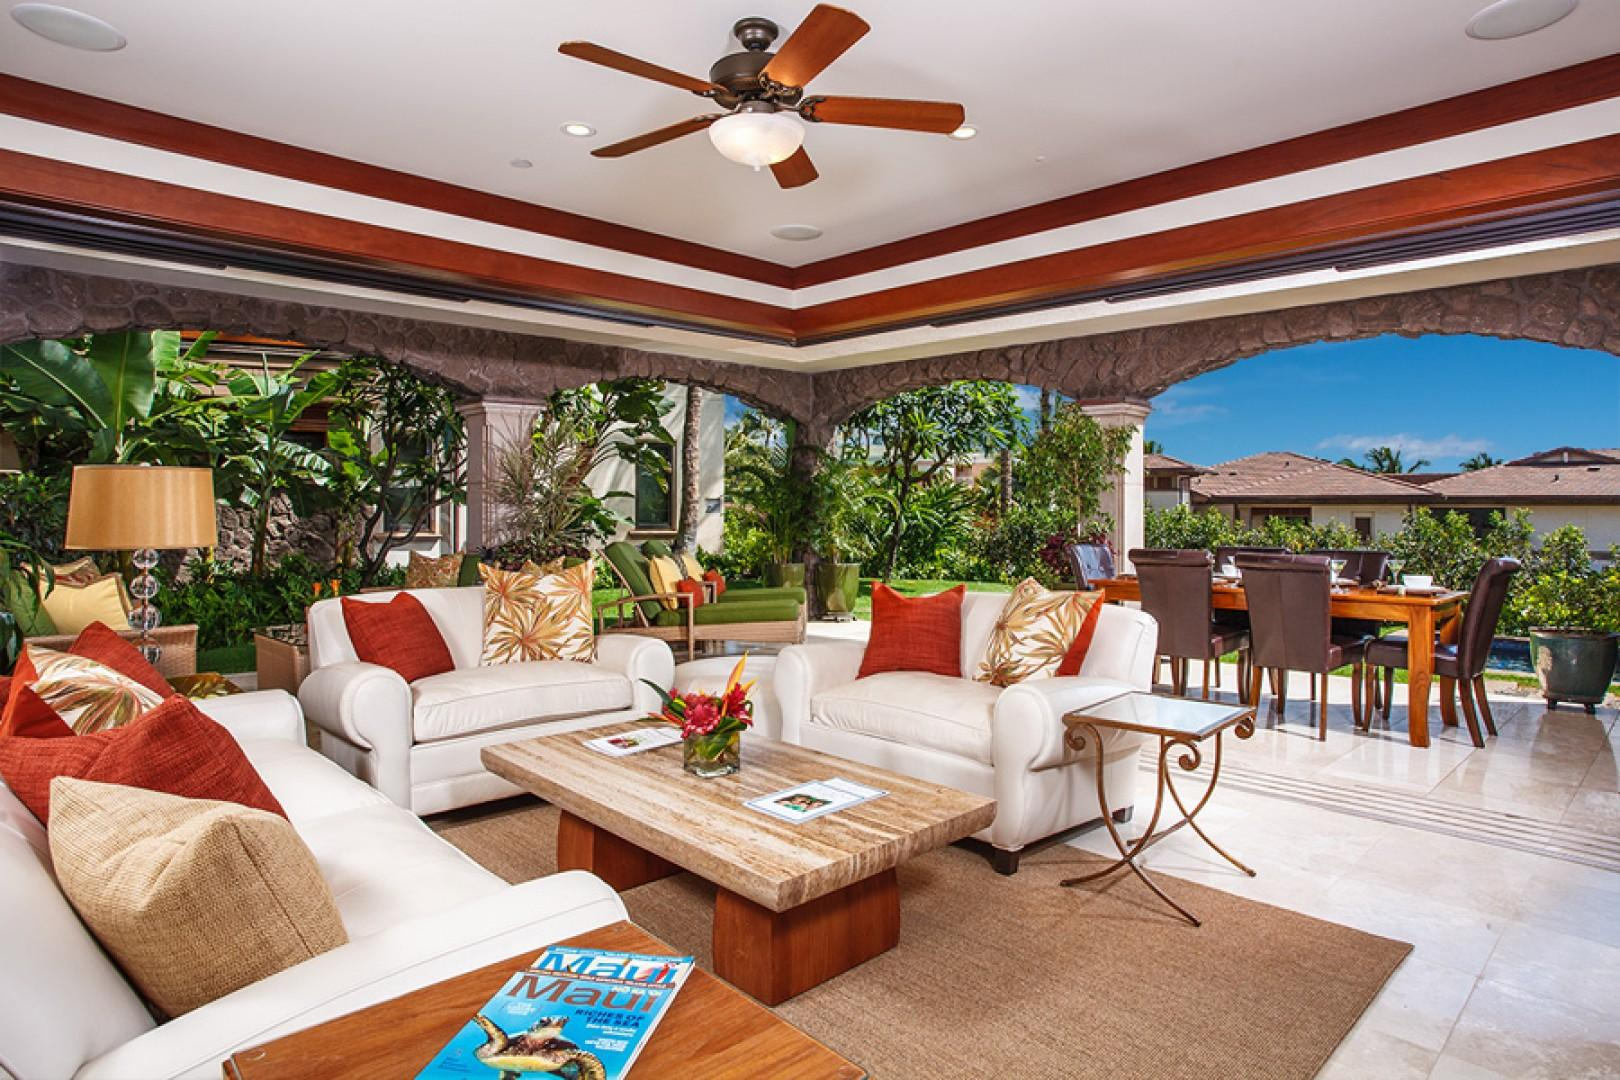 True indoor/outdoor living in more than 3,000 square feet, plus covered lanai, plunge pool, lawn, and grotto shower.